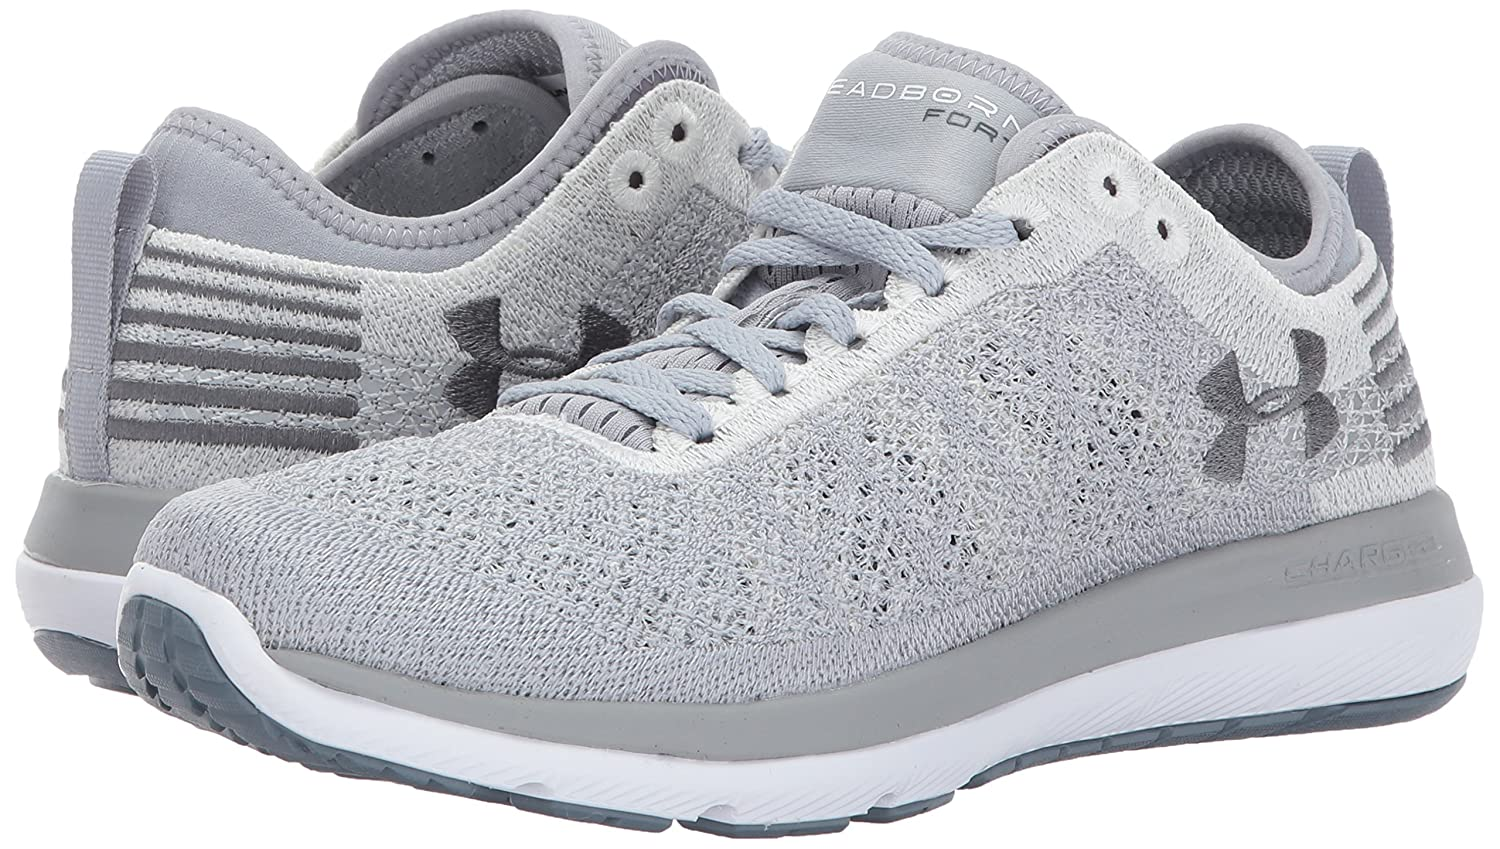 Under Armour Shoe Women's Threadborne Fortis Running Shoe Armour B01MXXIAW7 12 M US|Overcast Gray (103)/White d5ebc6